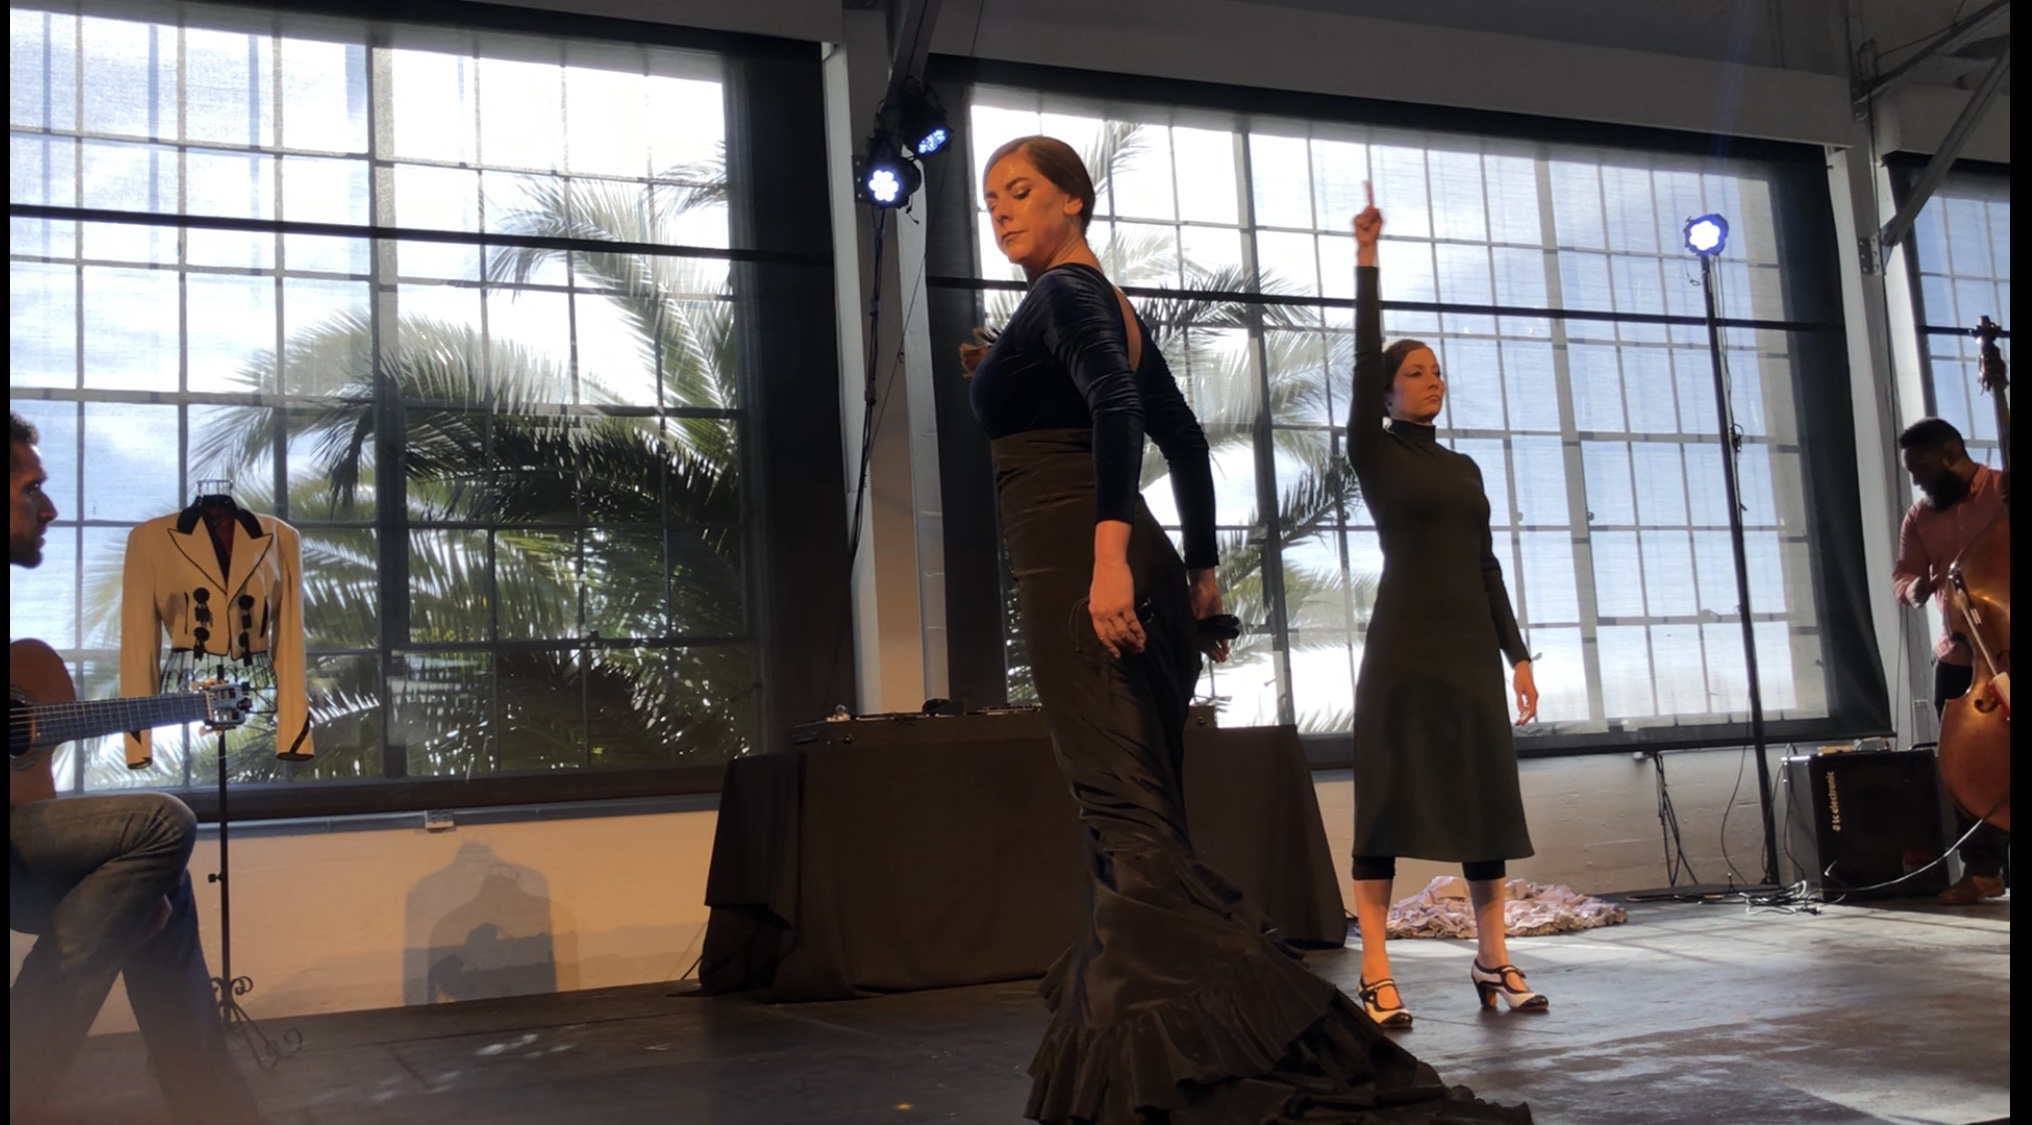 Community Engagement - Theatre Flamenco of San Francisco provides performance opportunities for local dancers and musicians at El Rincón Flamenco Show. We provided 7 El Rincón shows in 2018. We also offer special workshops by guest artists from Spain for local dancers and musicians.We provide our studio space for dance classes or small event for local artists.